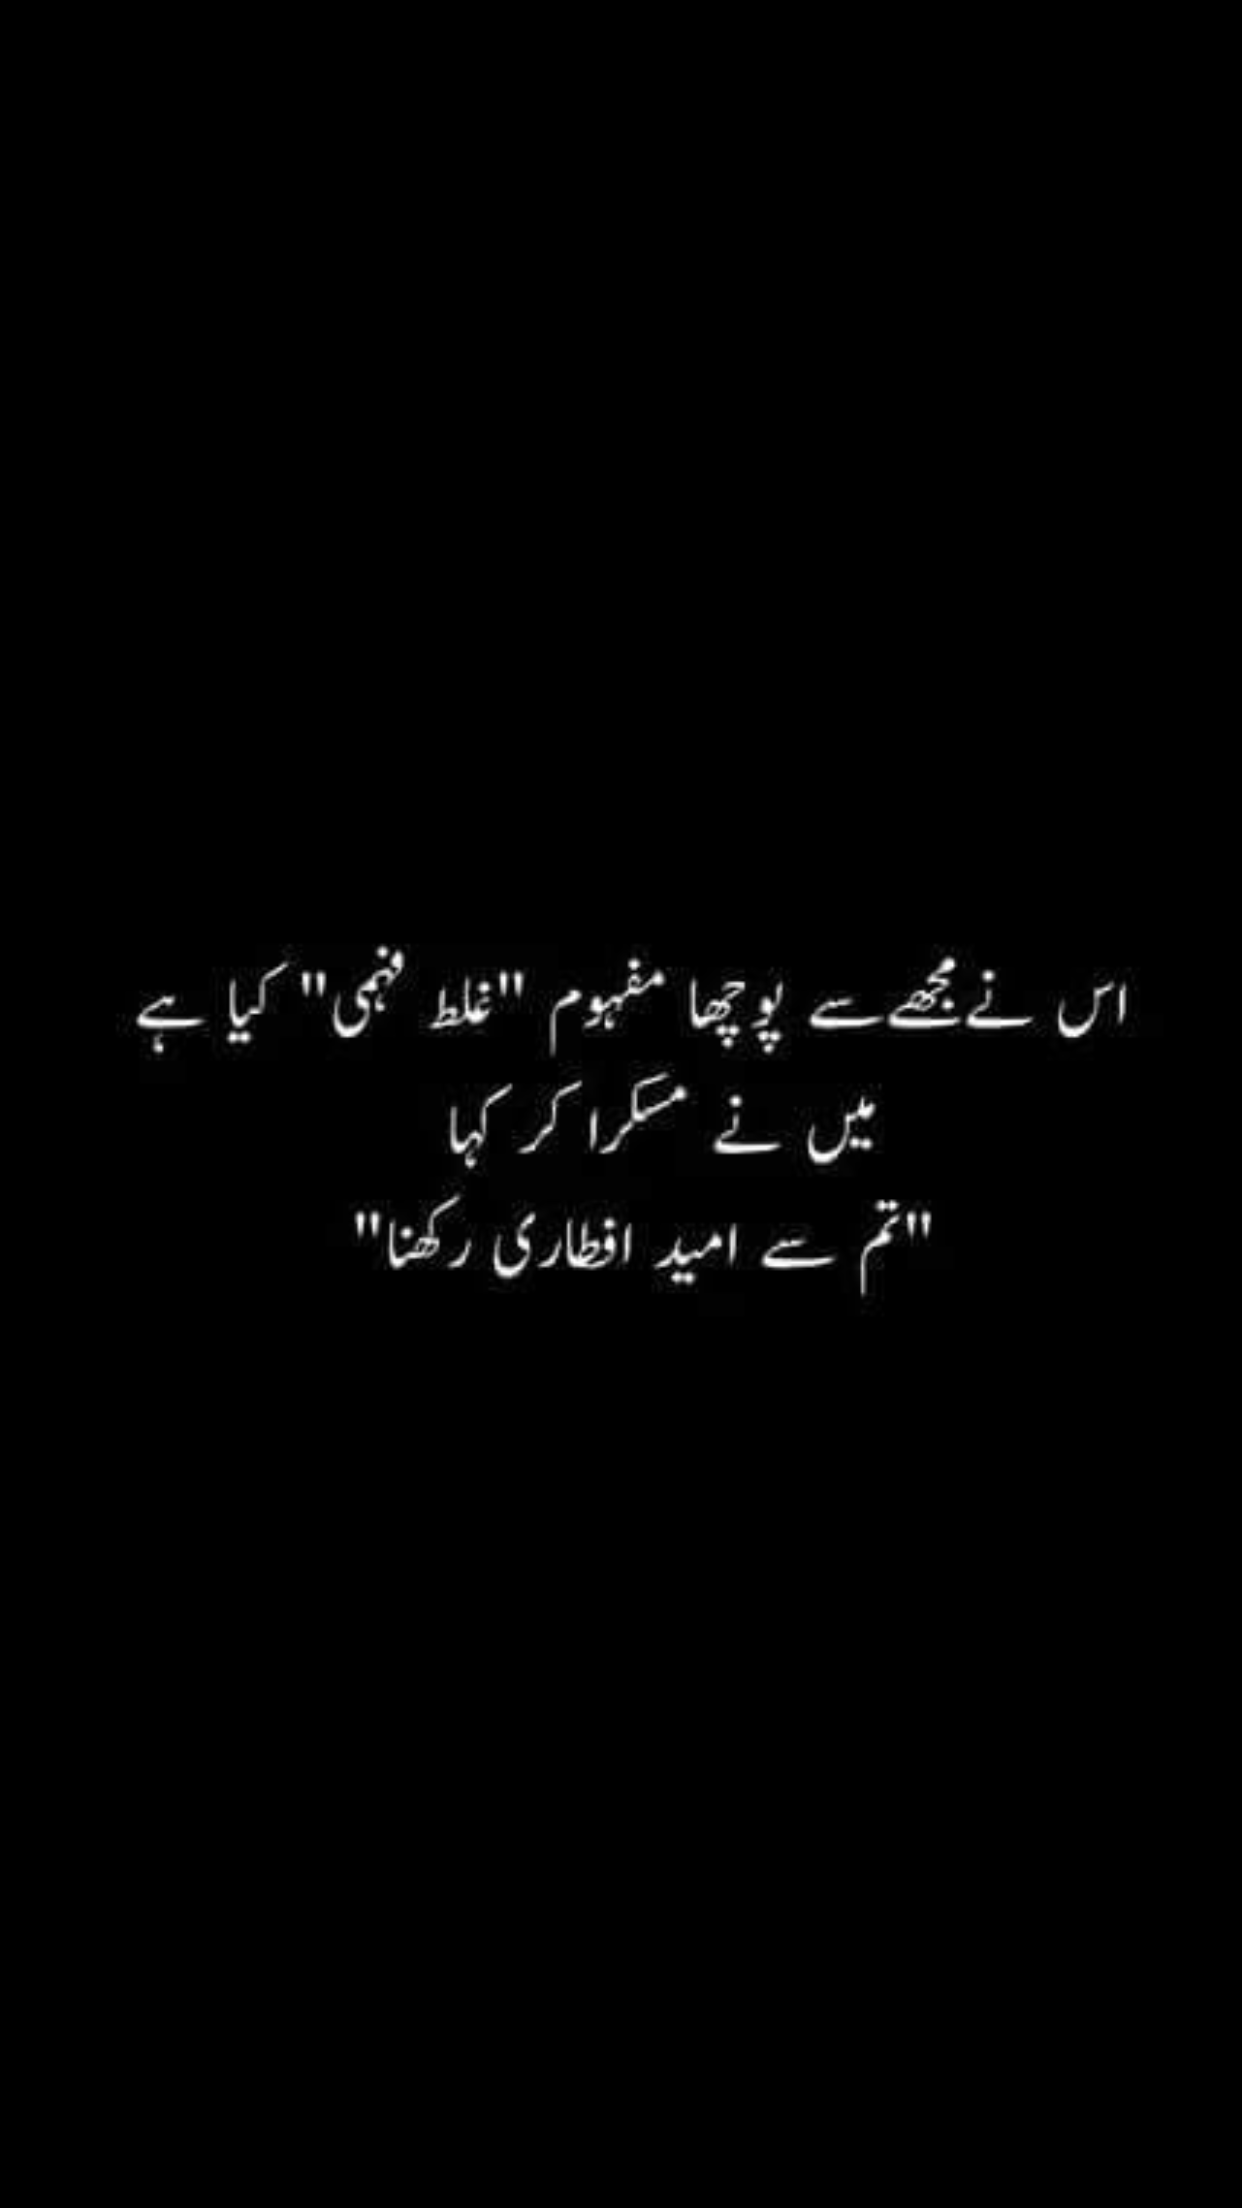 Pin By Khan Sabeen On Funny Jokes Funny Words Funny Quotes Funny Qoutes